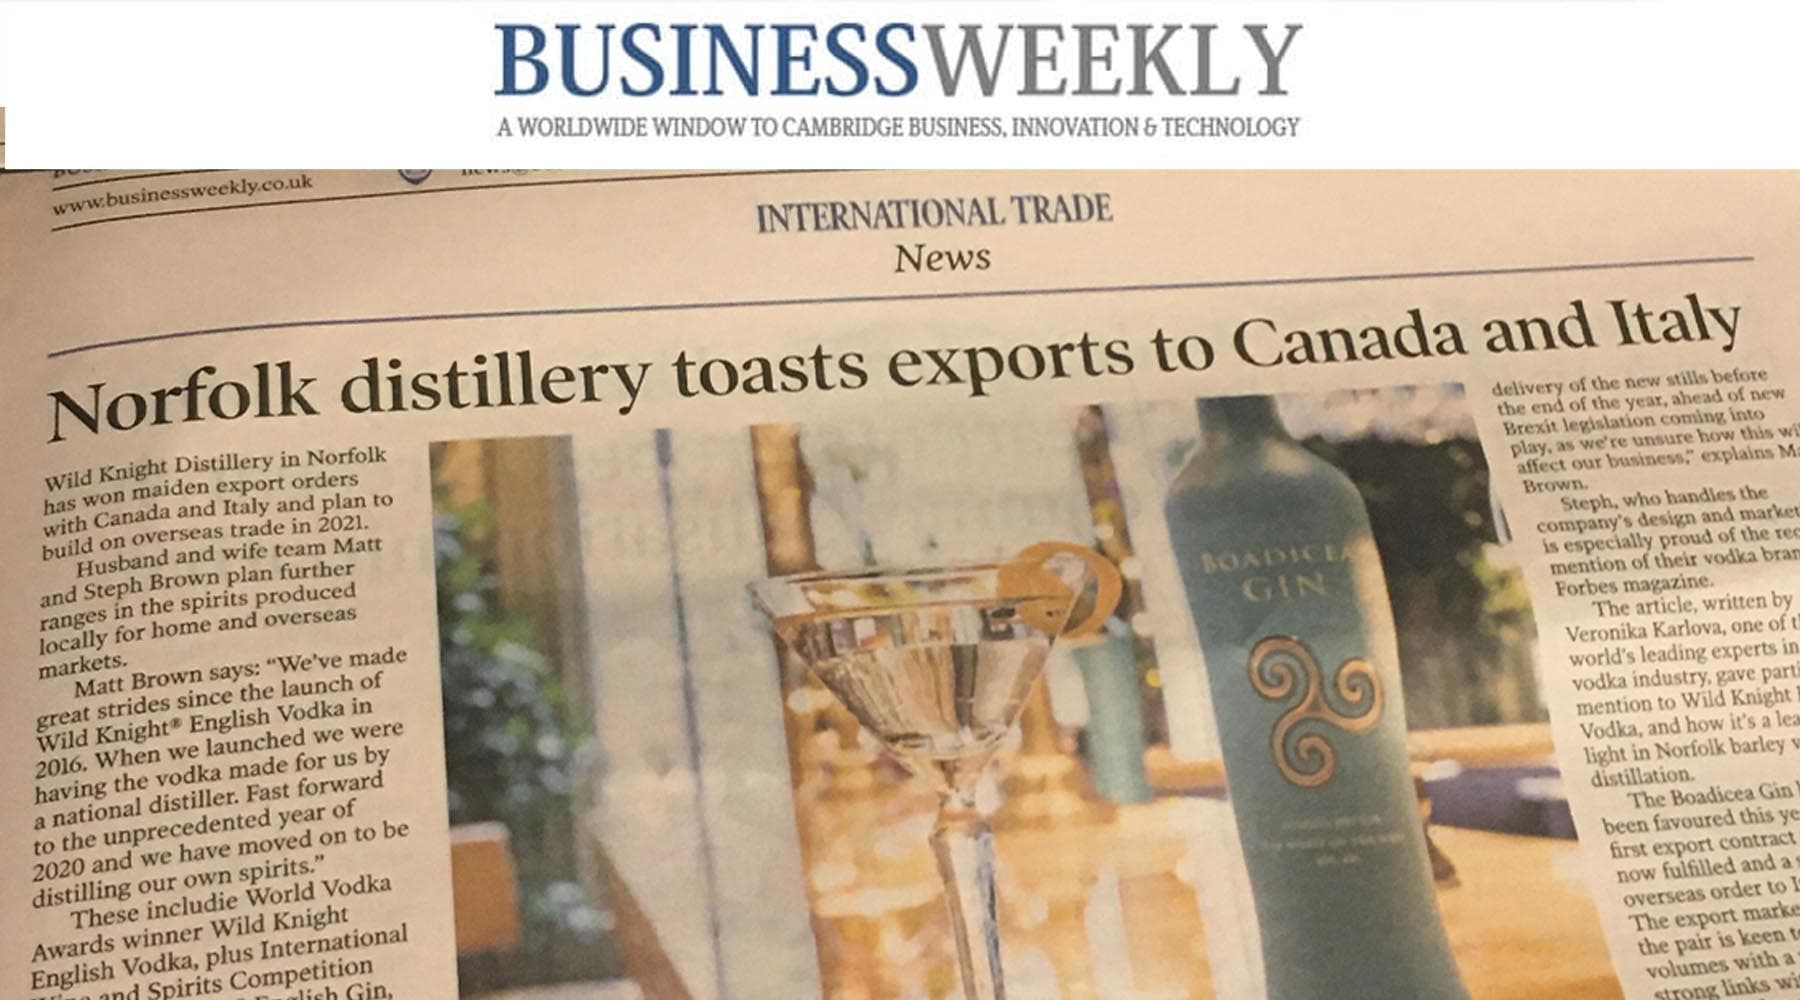 Norfolk distillery toasts exports to Canada and Italy